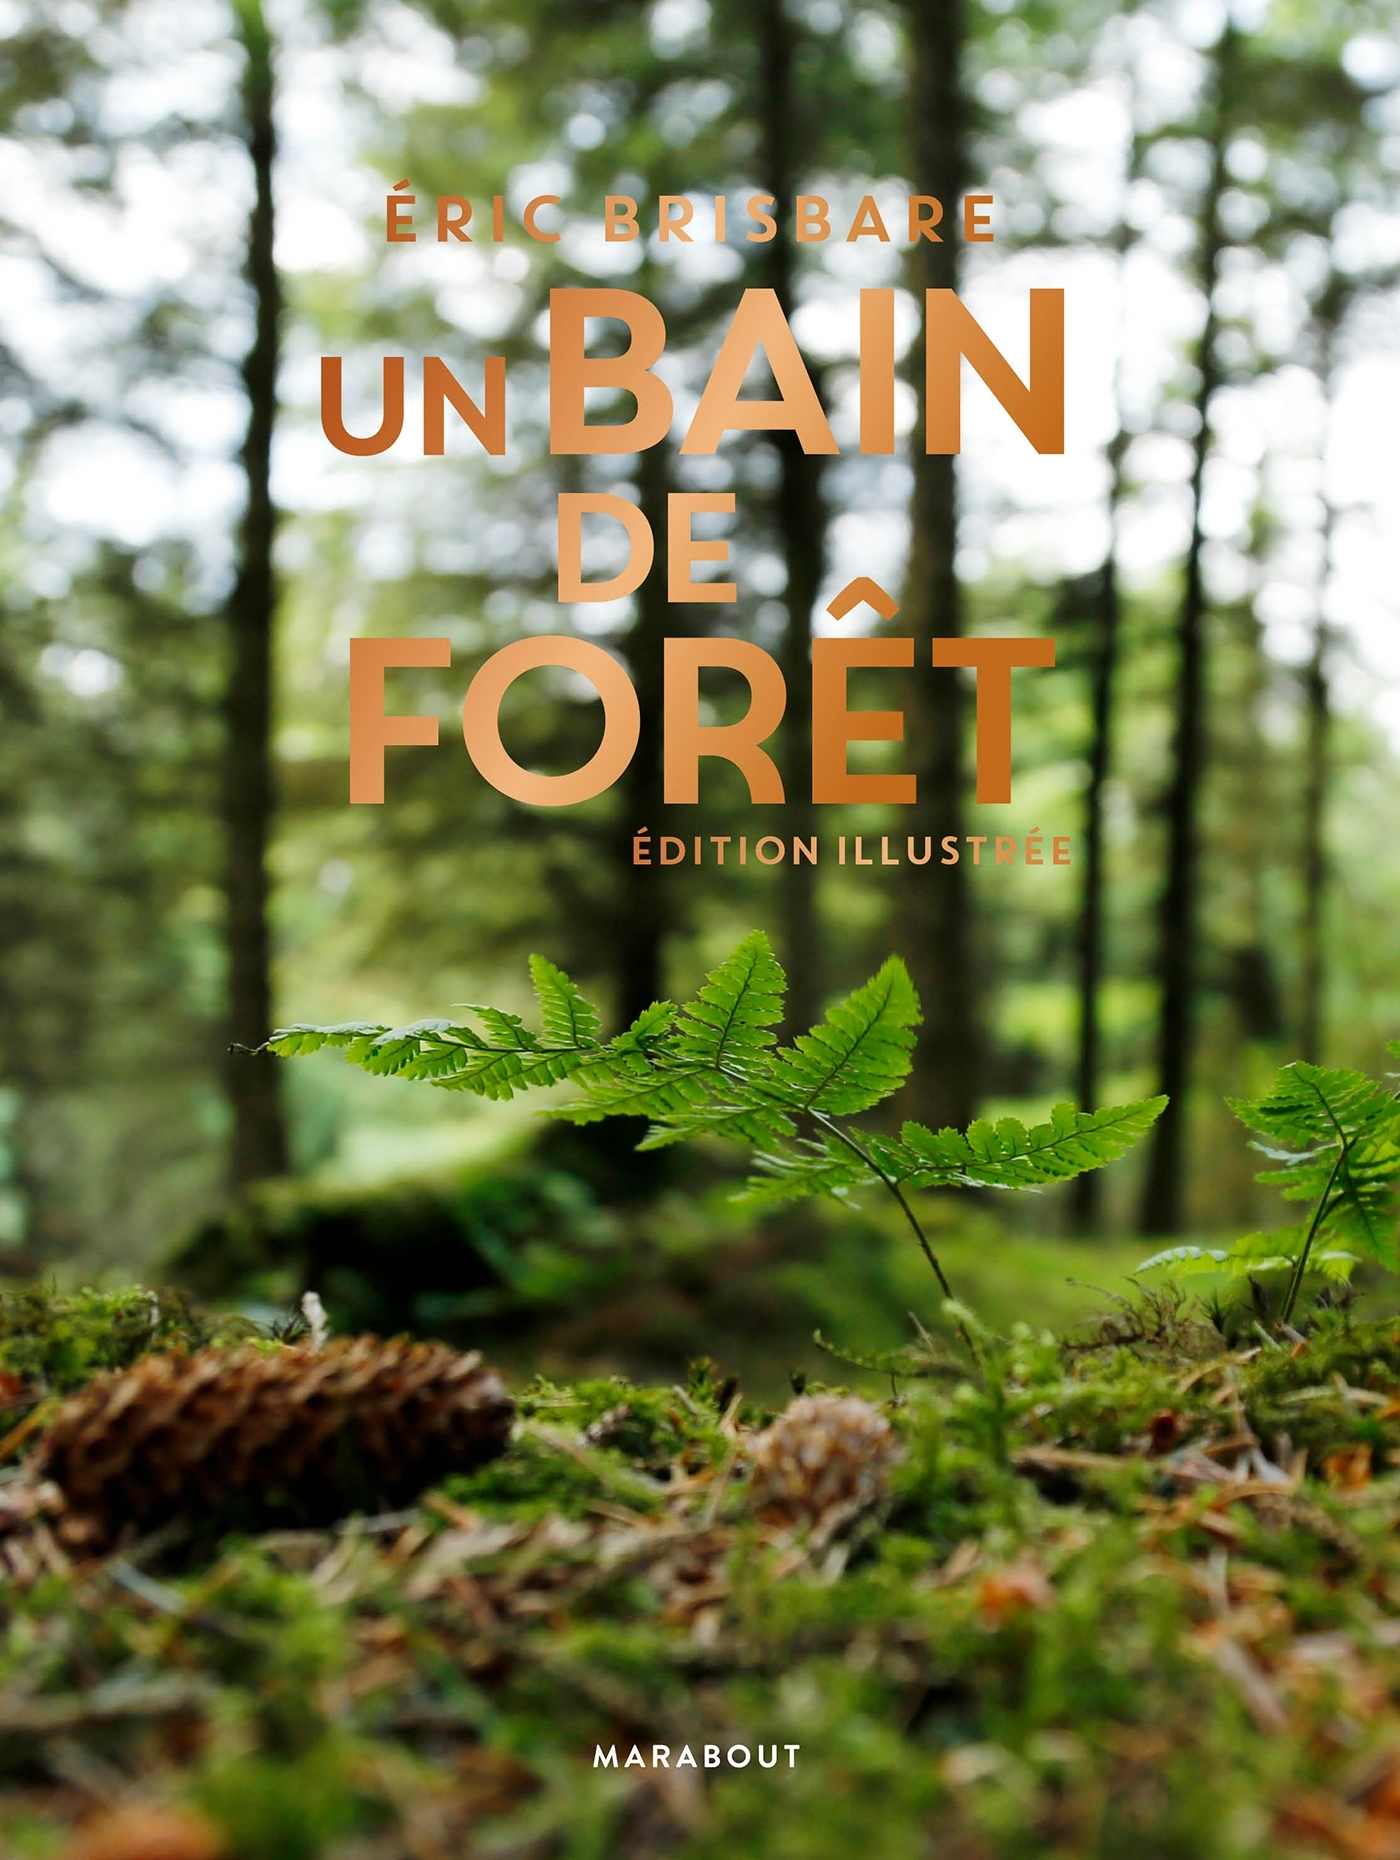 UN BAIN DE FORET - EDITION ILLUSTREE